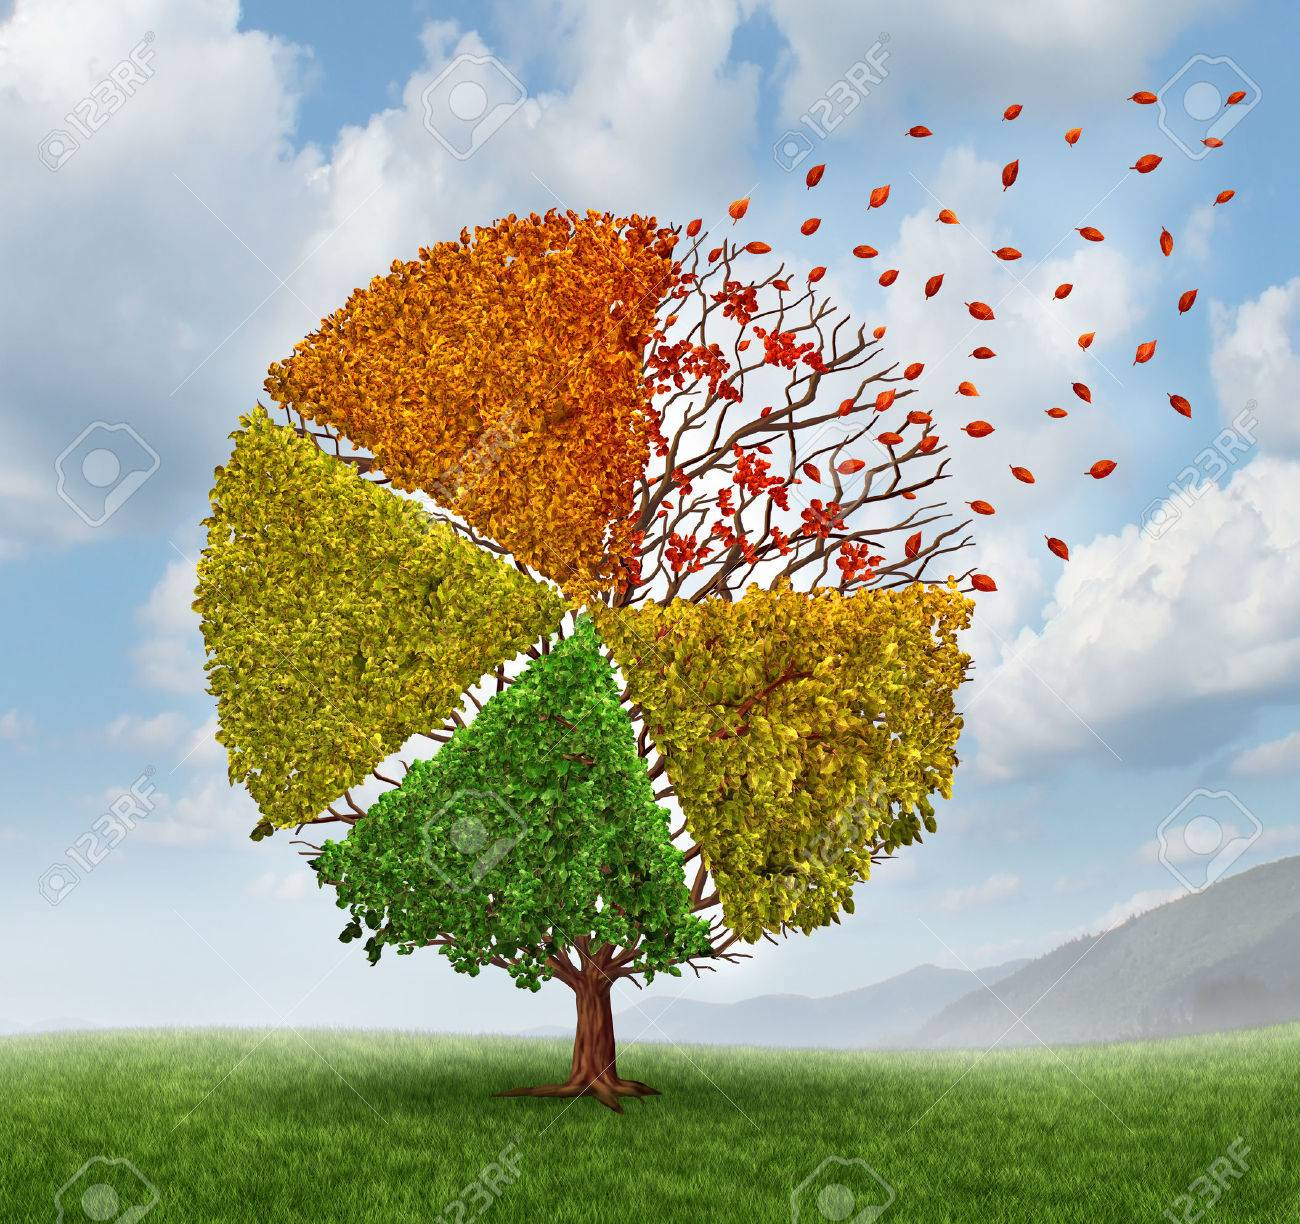 Changing market concept and  losing business pie chart as an aging green tree with leaves turning yellow to red and falling off as a change metaphor for investing conditions as a financial graph chart symbol of economic challenges. Stock Photo - 23843267